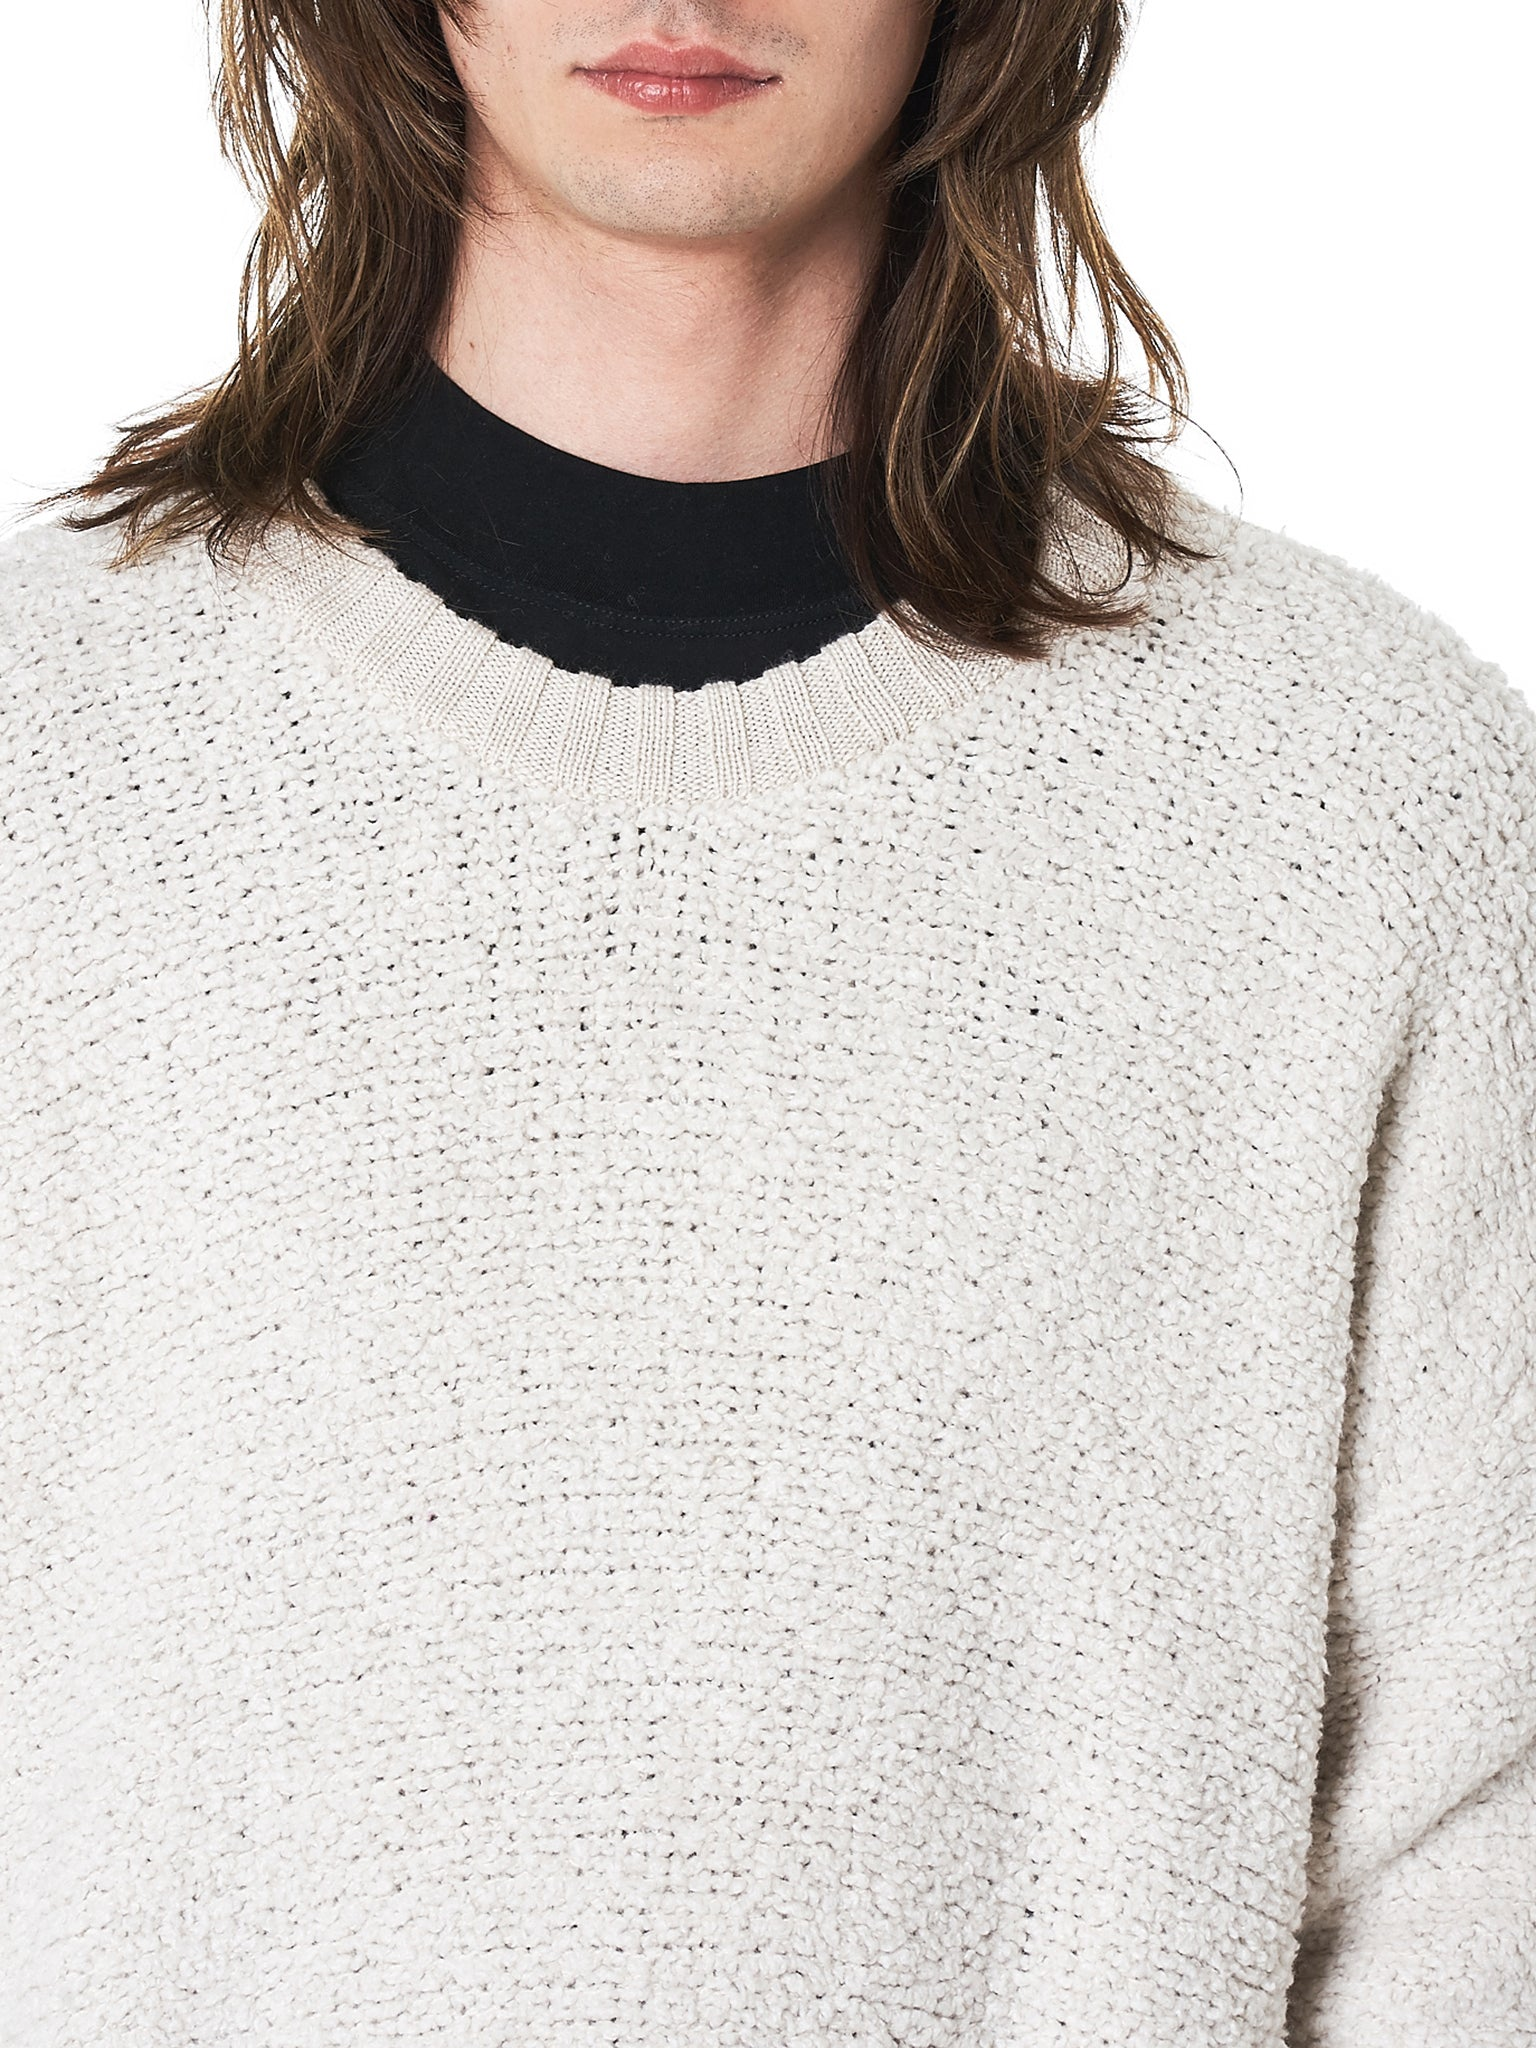 Lost & Found Rooms Sweater - Hlorenzo detail 3